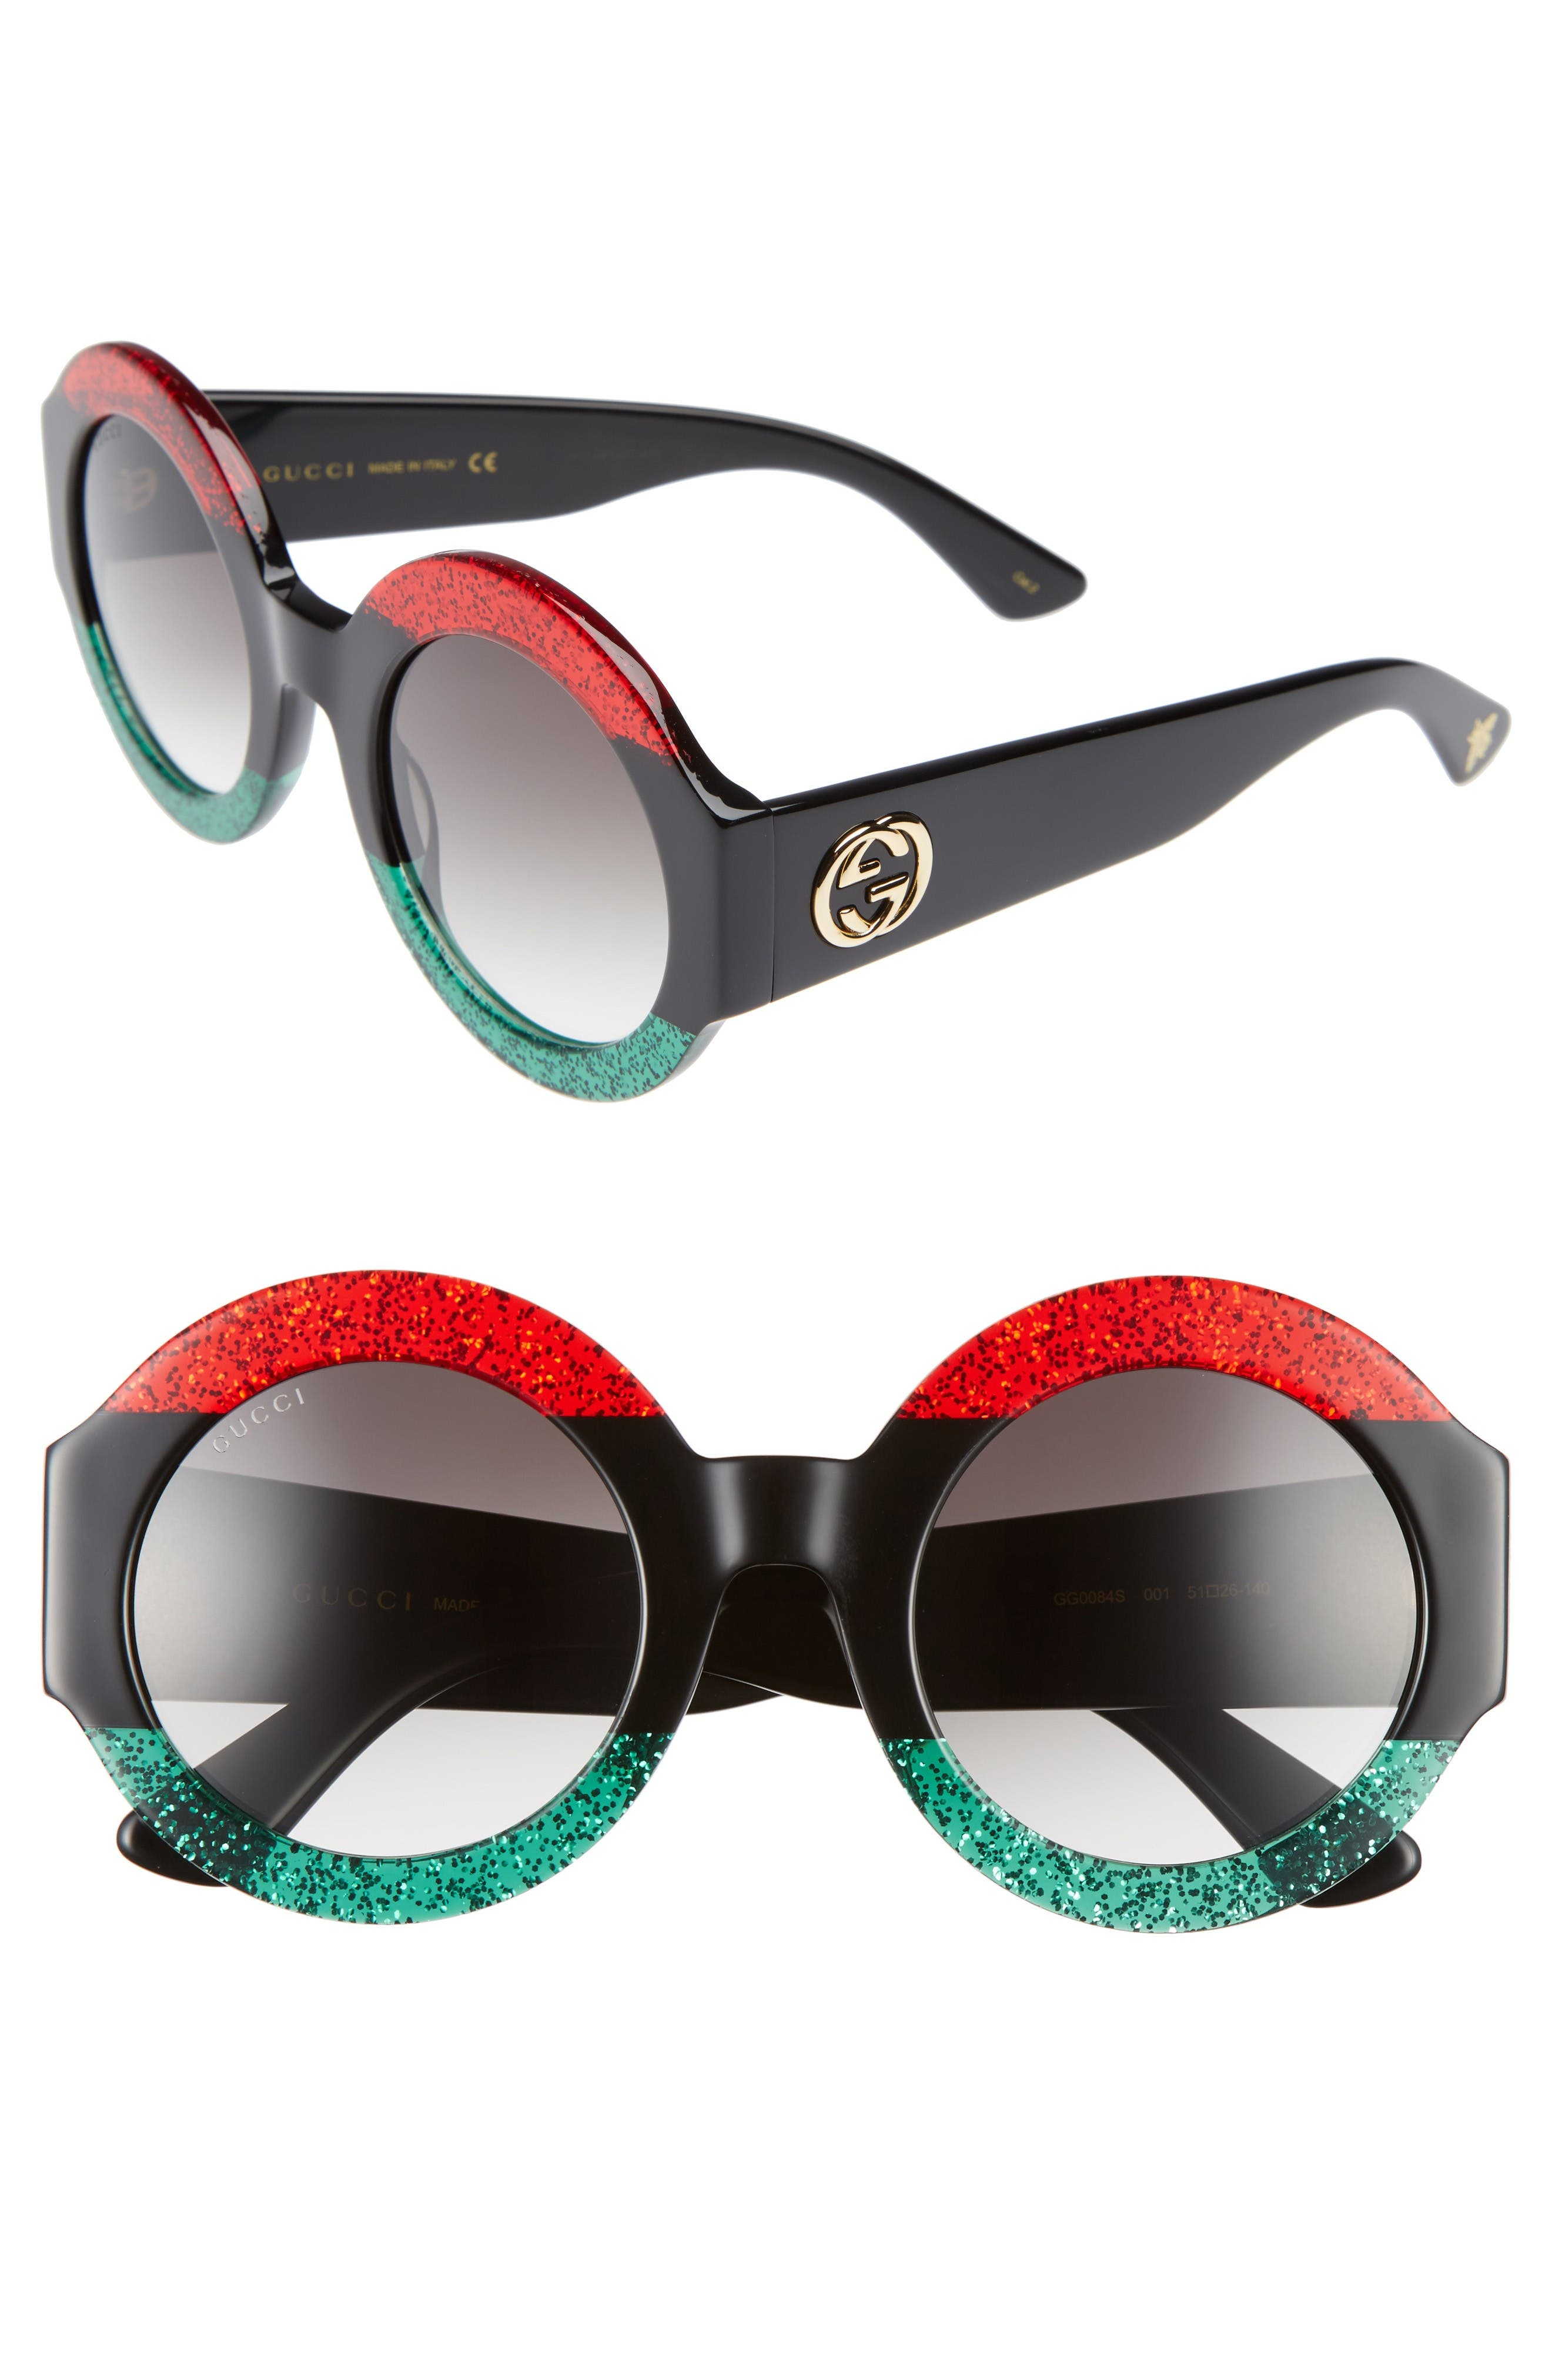 51mm Round Sunglasses,                             Main thumbnail 1, color,                             Red Black Green/ Grey